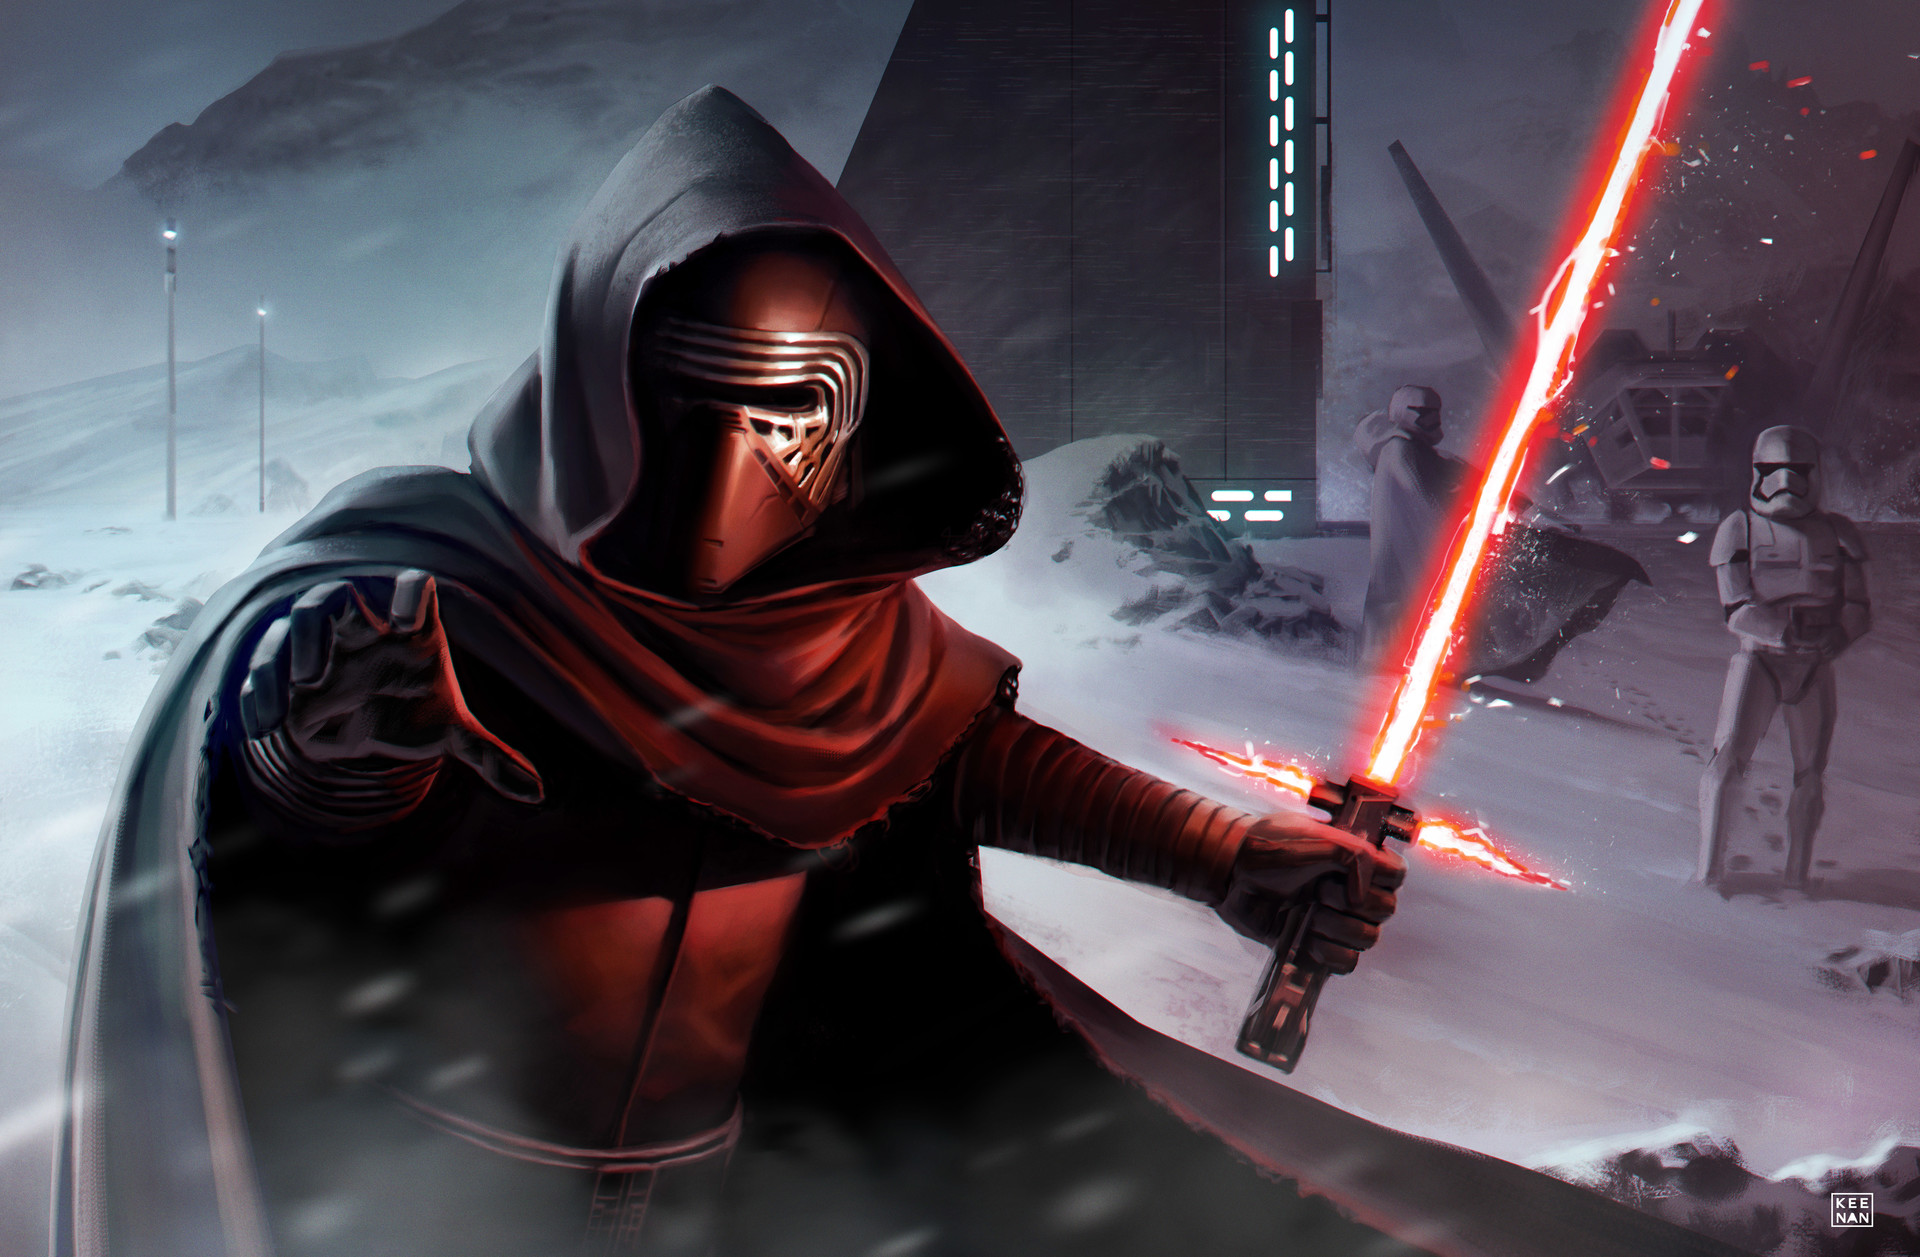 Dave keenan kylo ren the hunt